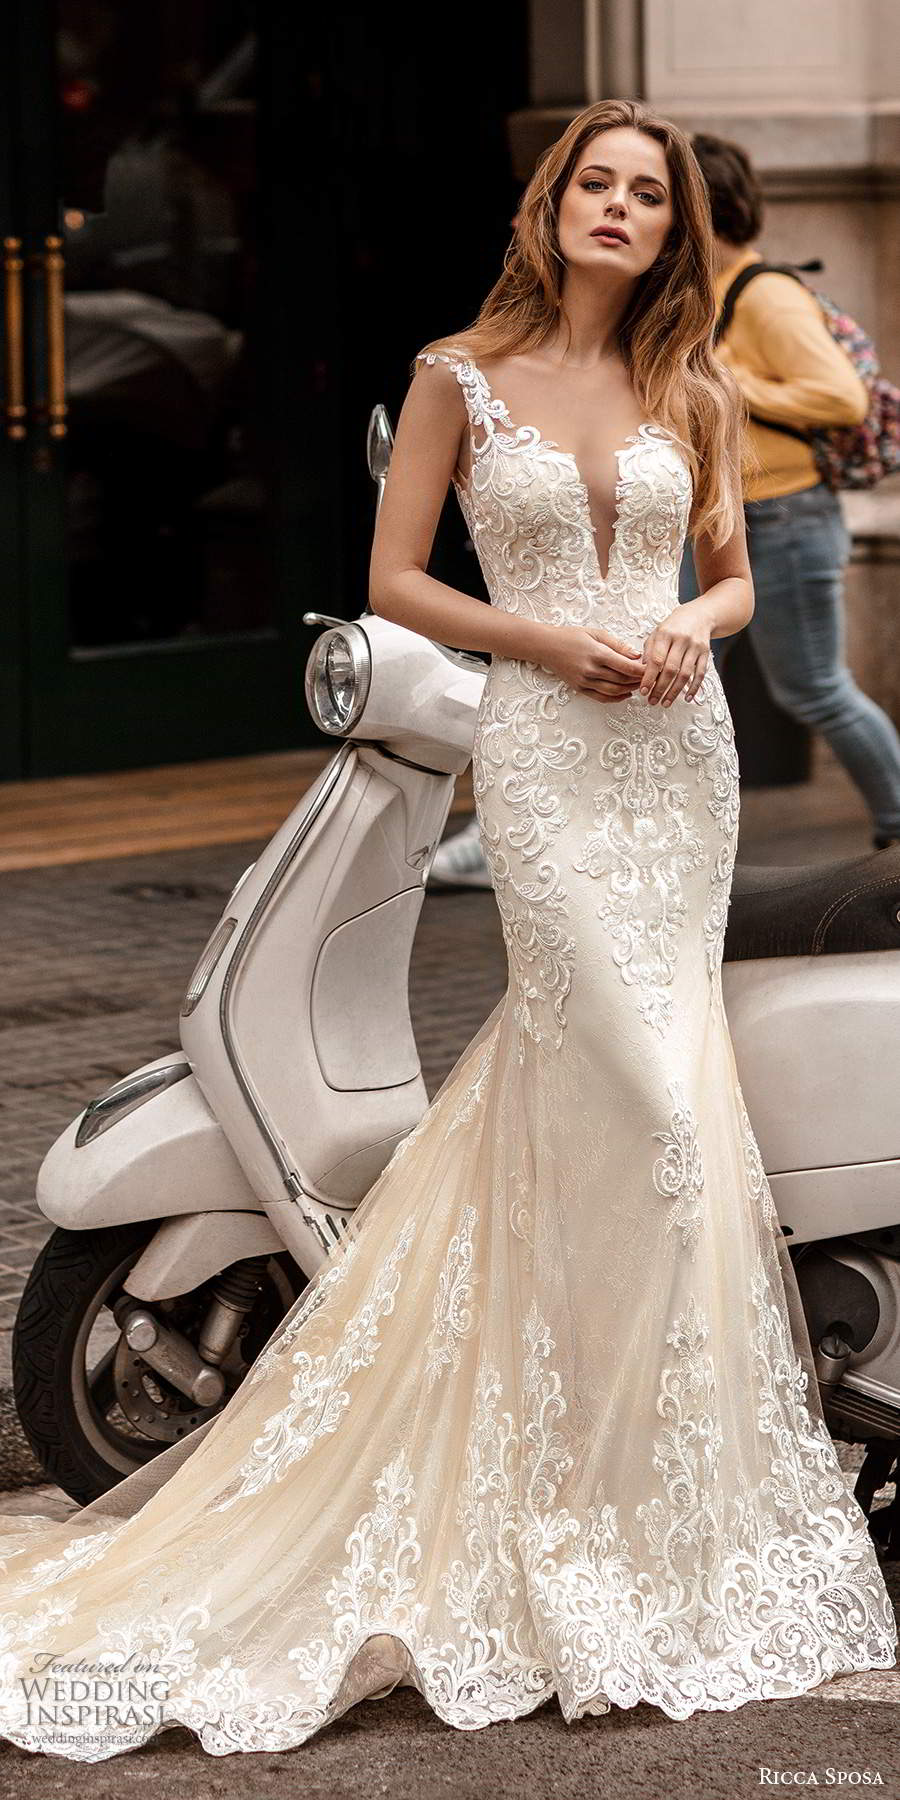 ricca sposa 2020 barcelona bridal illusion cap sleeves plunging v neckline fully embellished lace fit flare mermaid sheath wedding dress illusion low back chapel train (3) mv